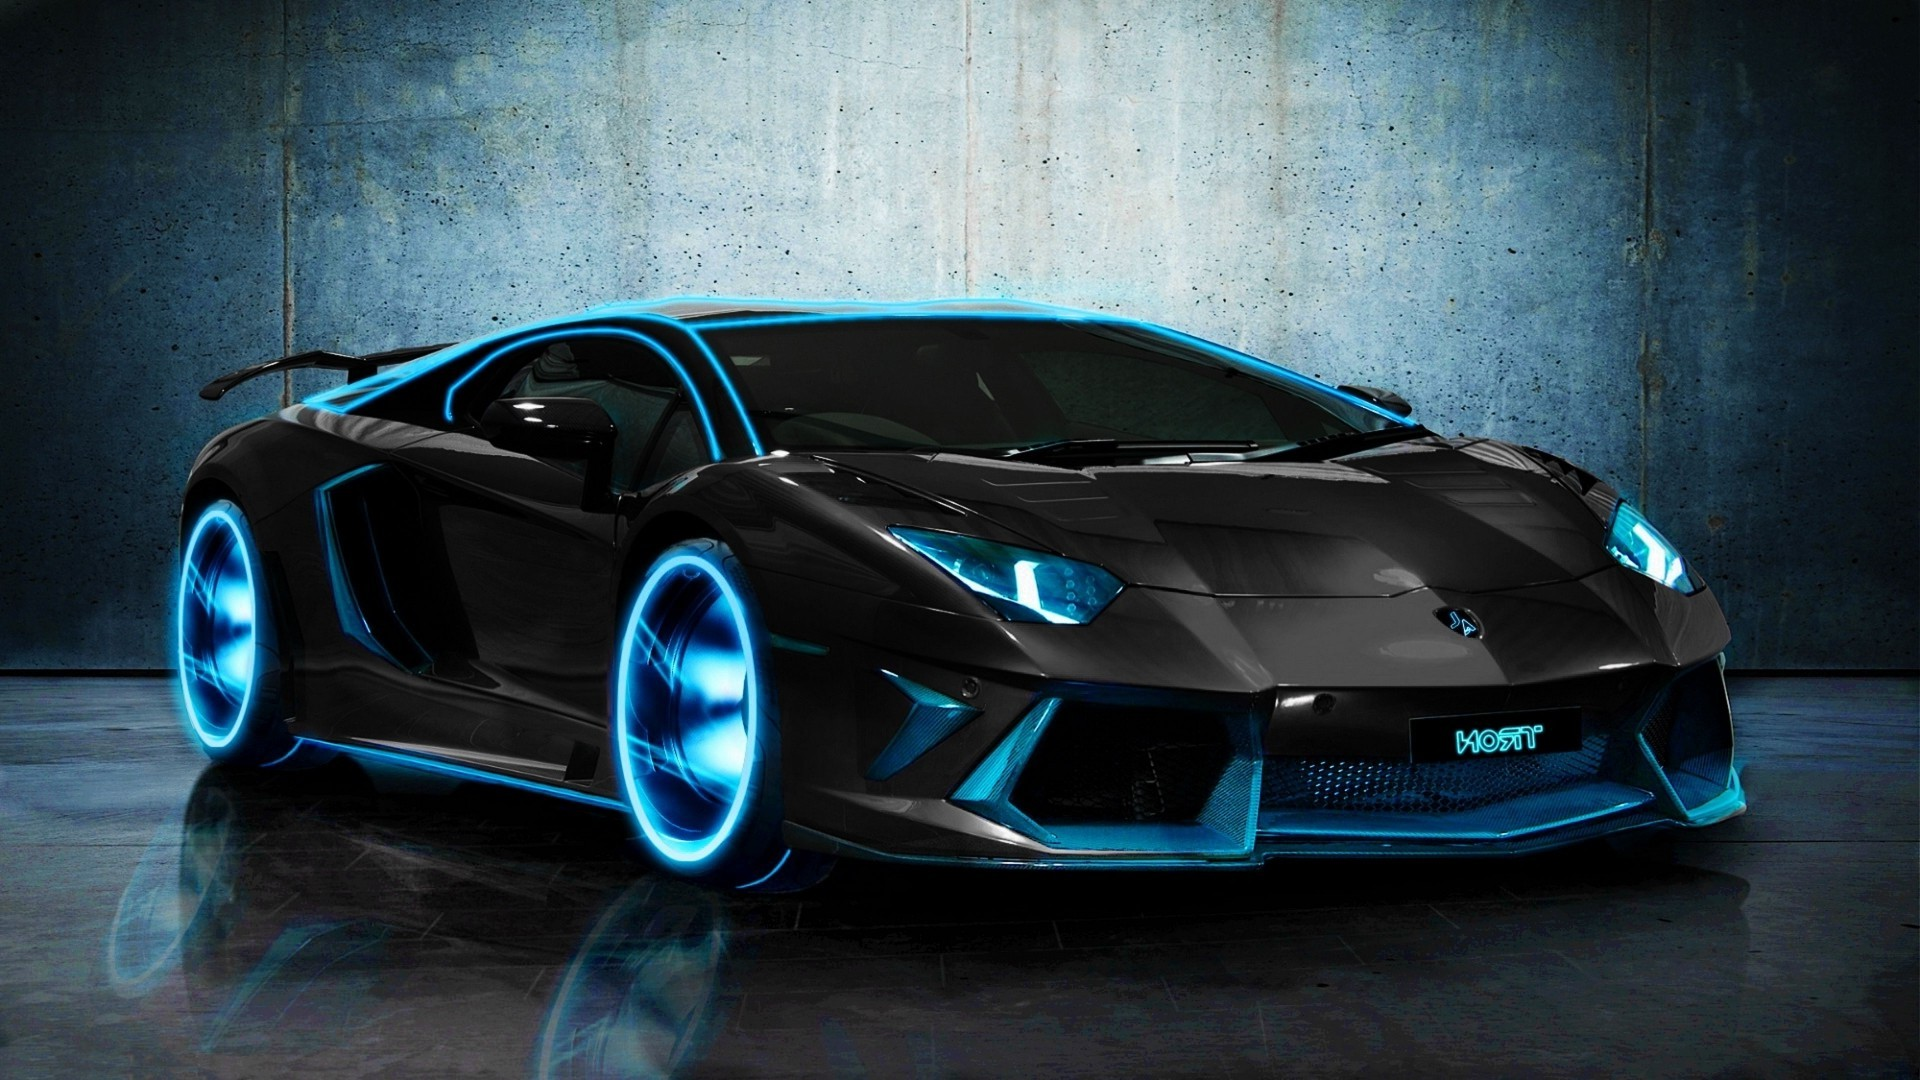 Lamborghini car wallpapersCheck out these 10 amazing hd wallpapers 458